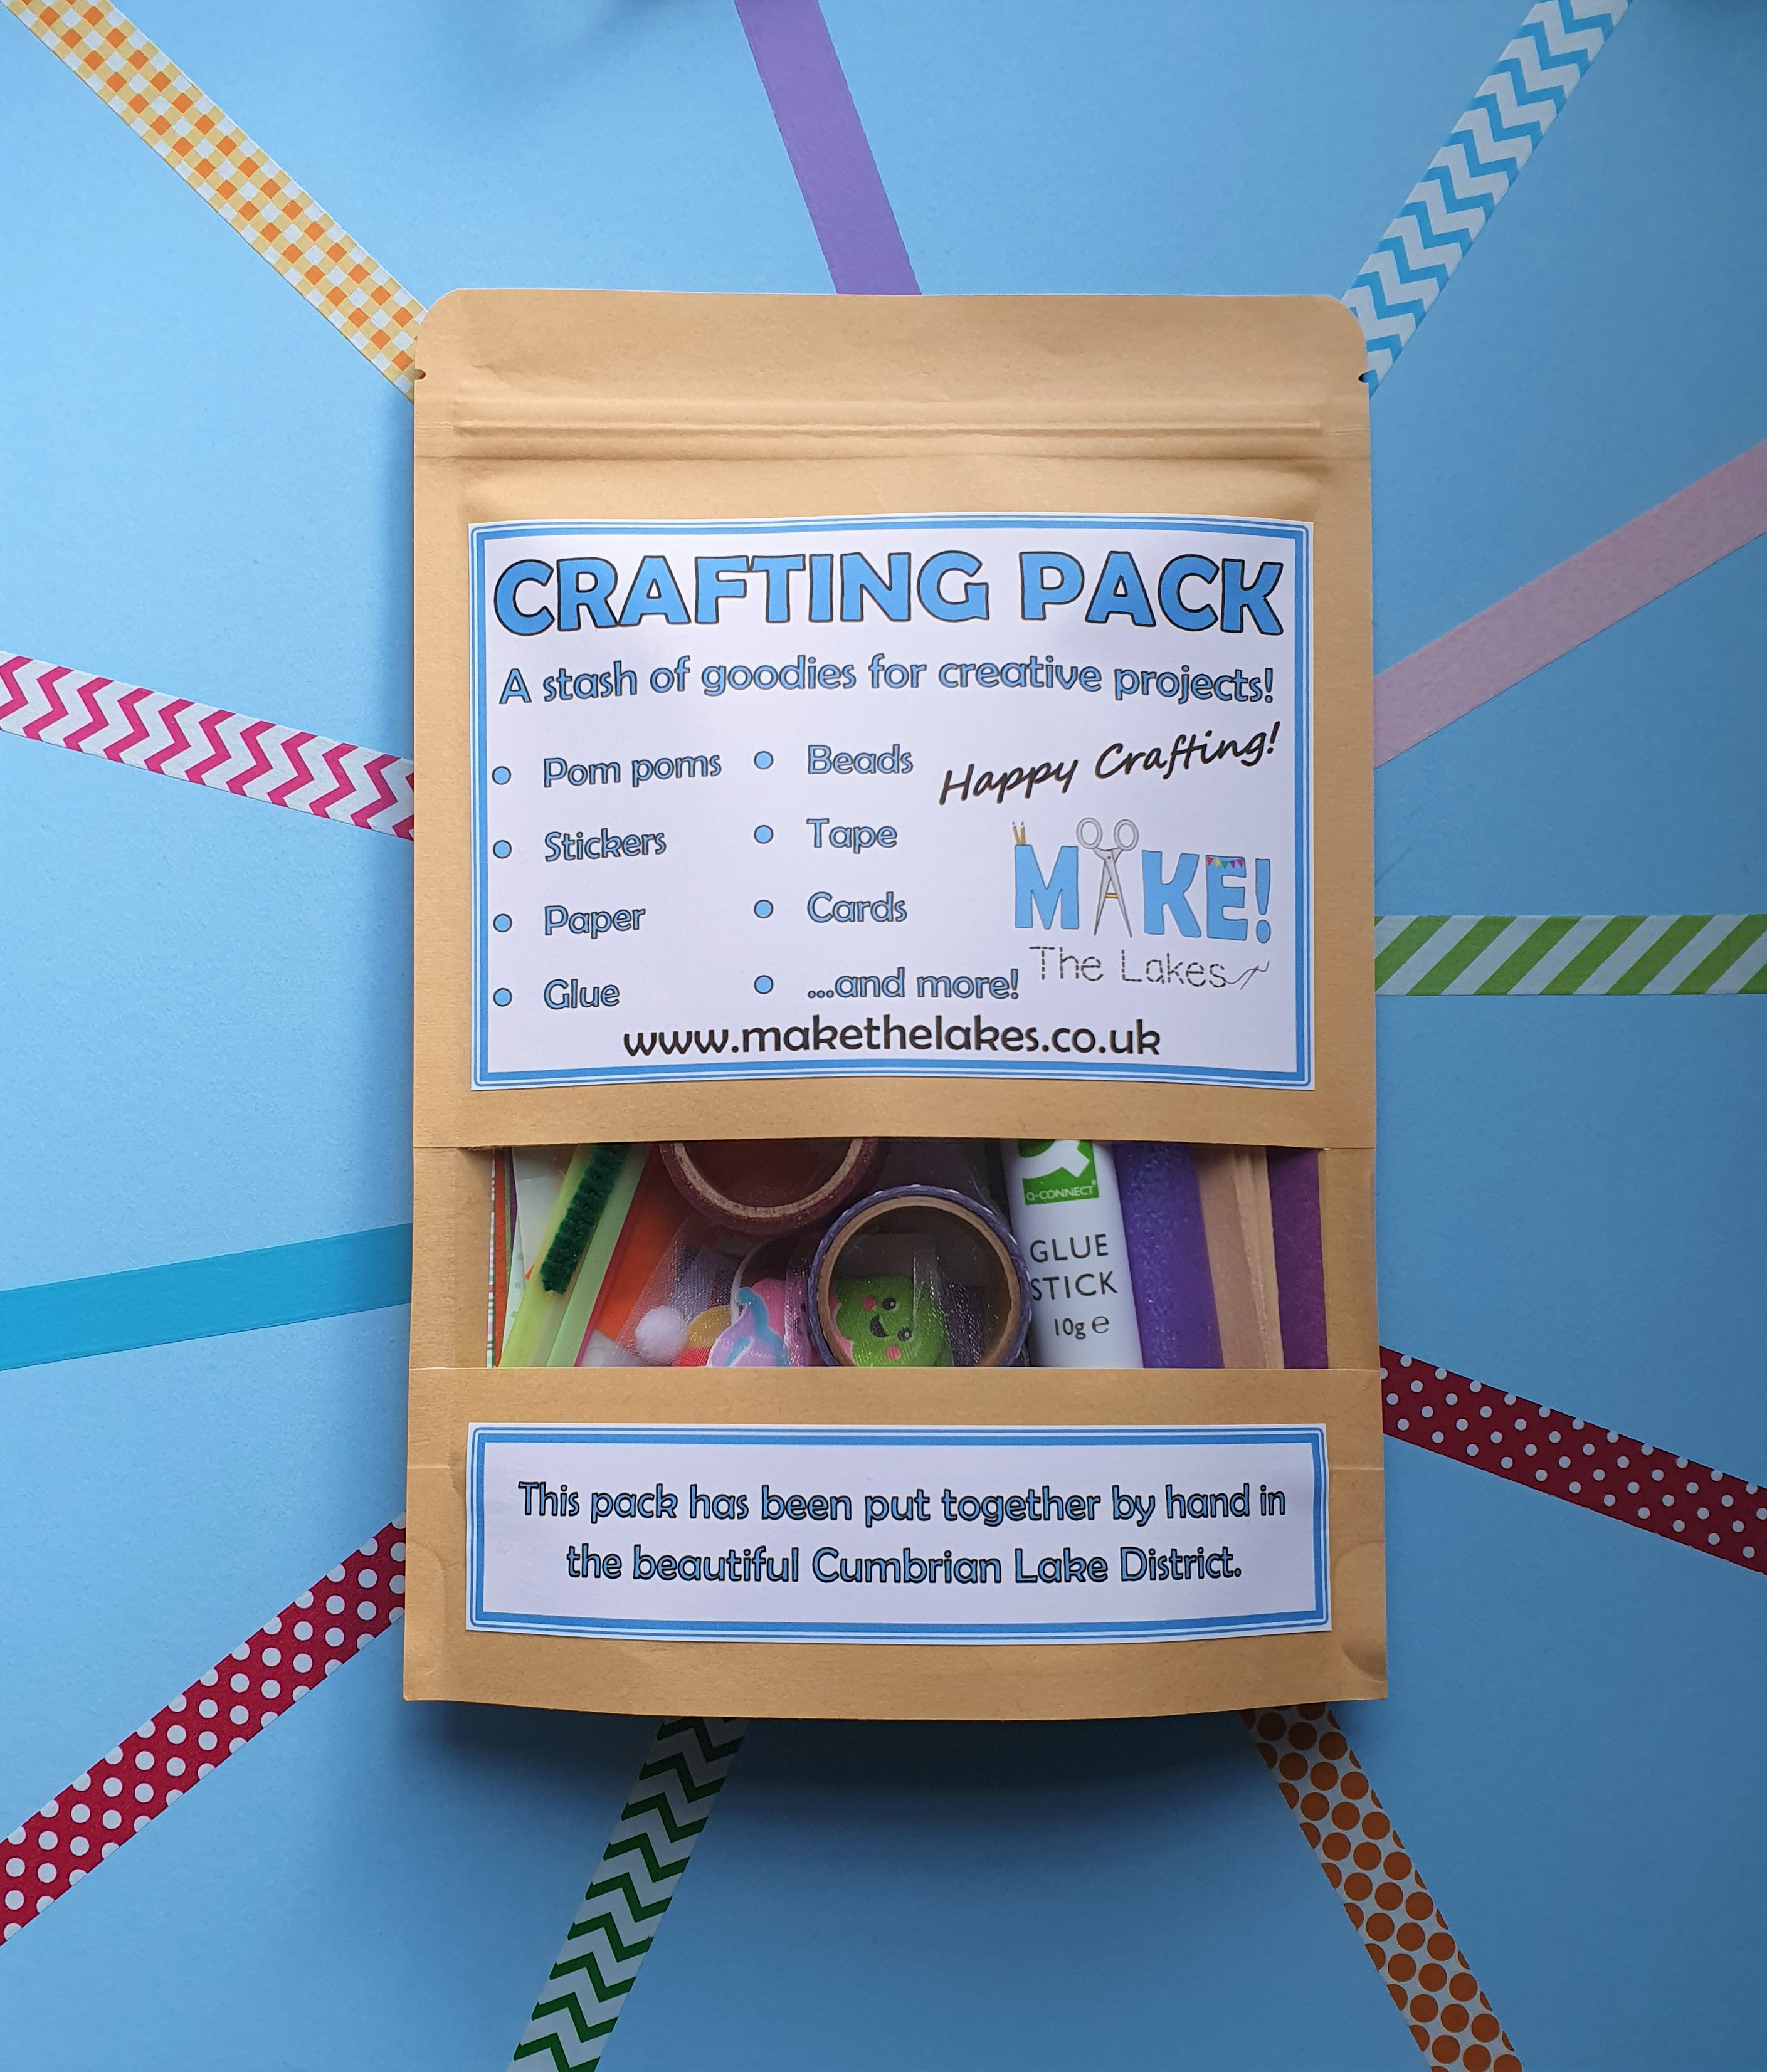 Crafting Pack